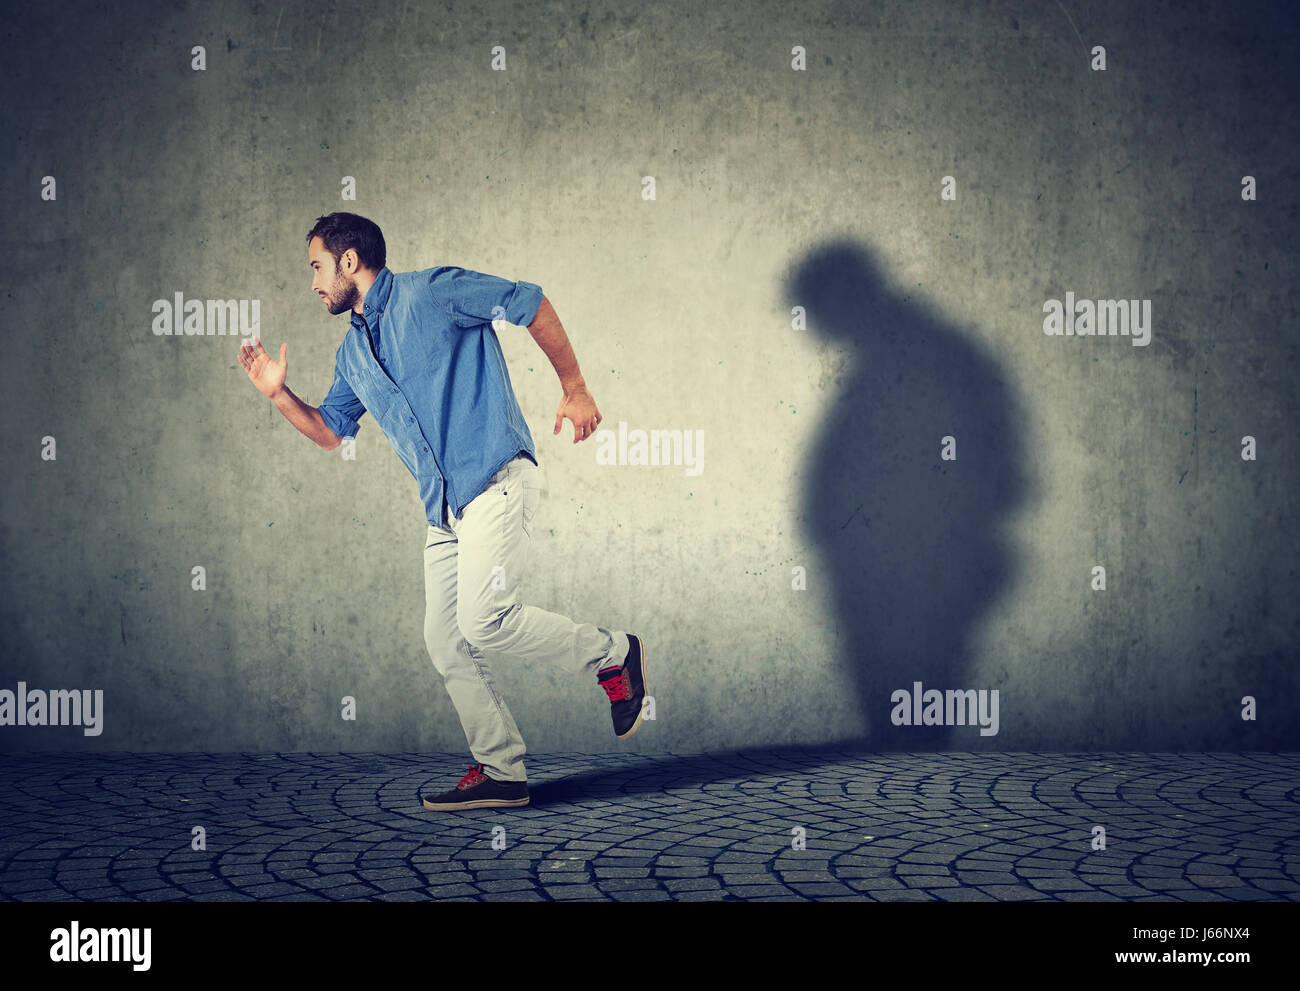 Man running away from his sad gloomy fat shadow on the wall. Mental health and body weight control concept - Stock Image